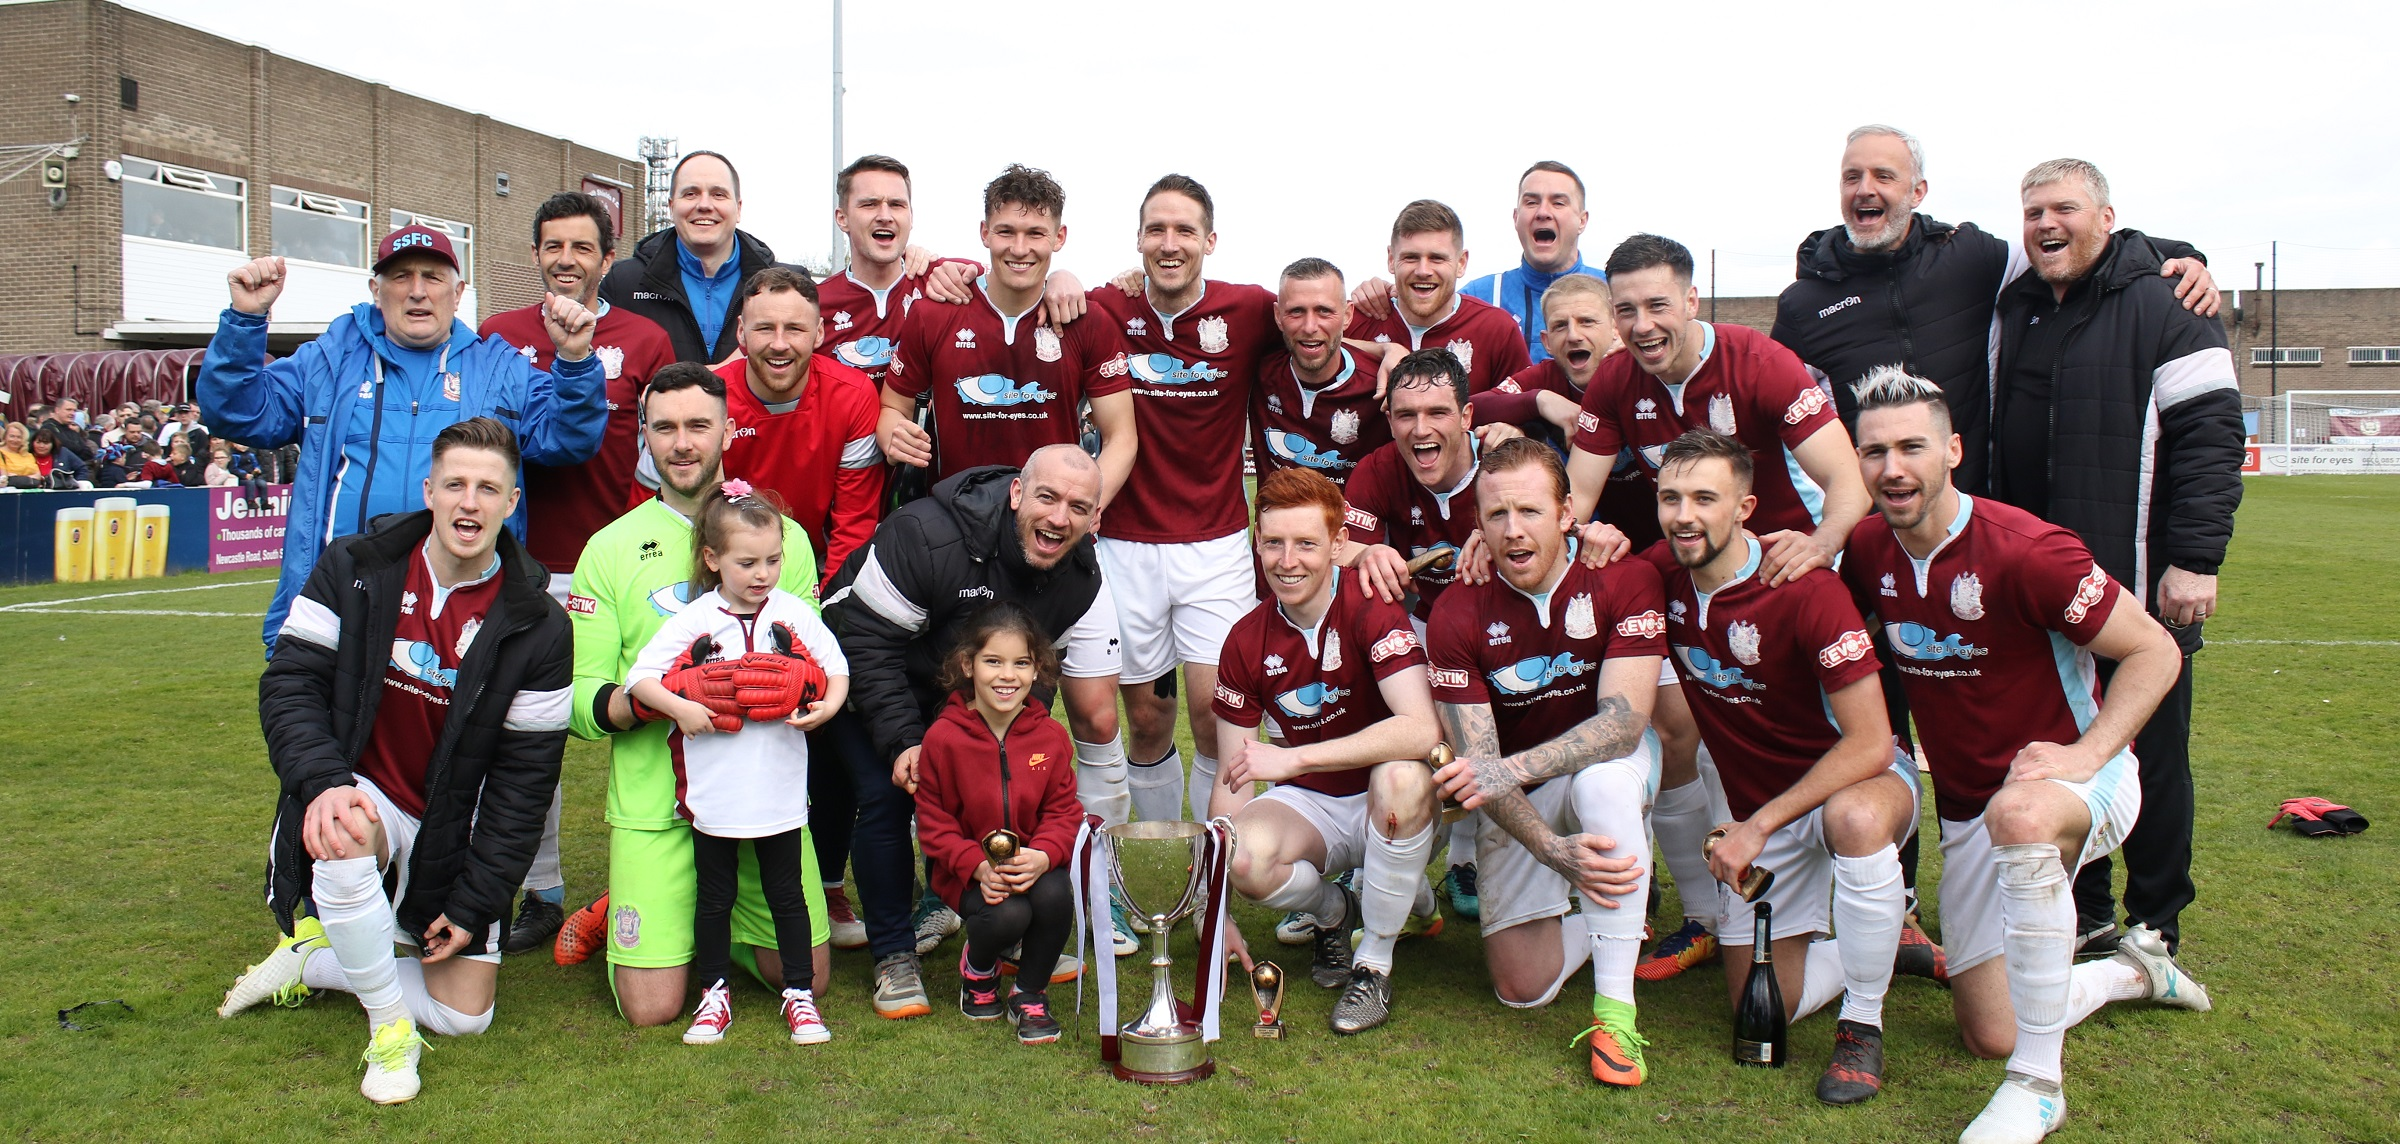 South Shields FC International Tournament to be held this summer